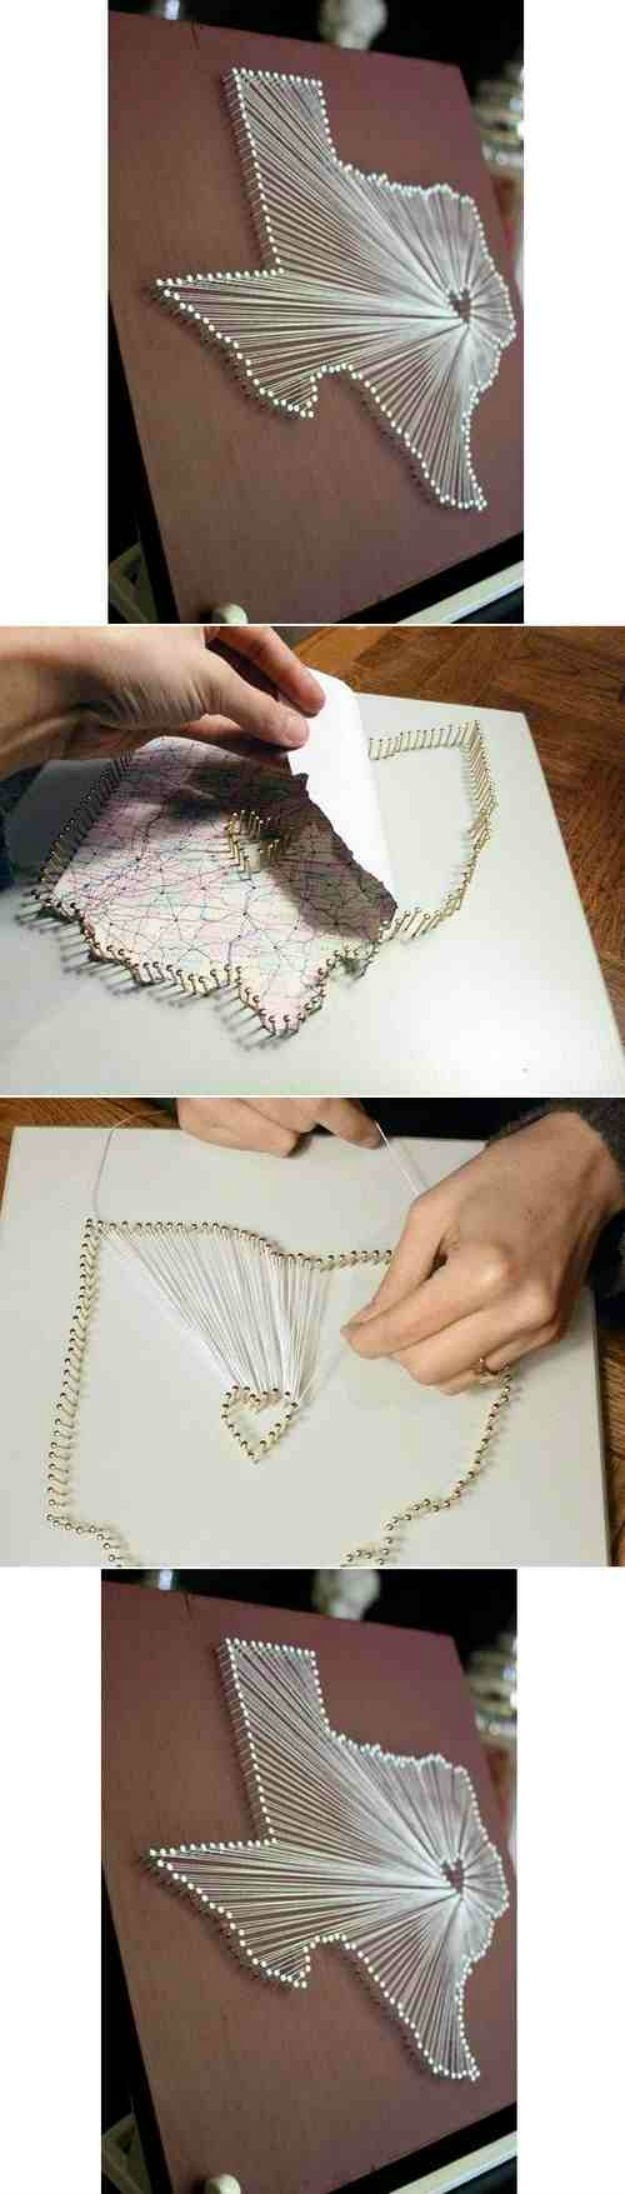 10 Elegant Cool Gift Ideas For Girlfriend christmas gifts for girlfriends diy projects craft ideas how tos 16